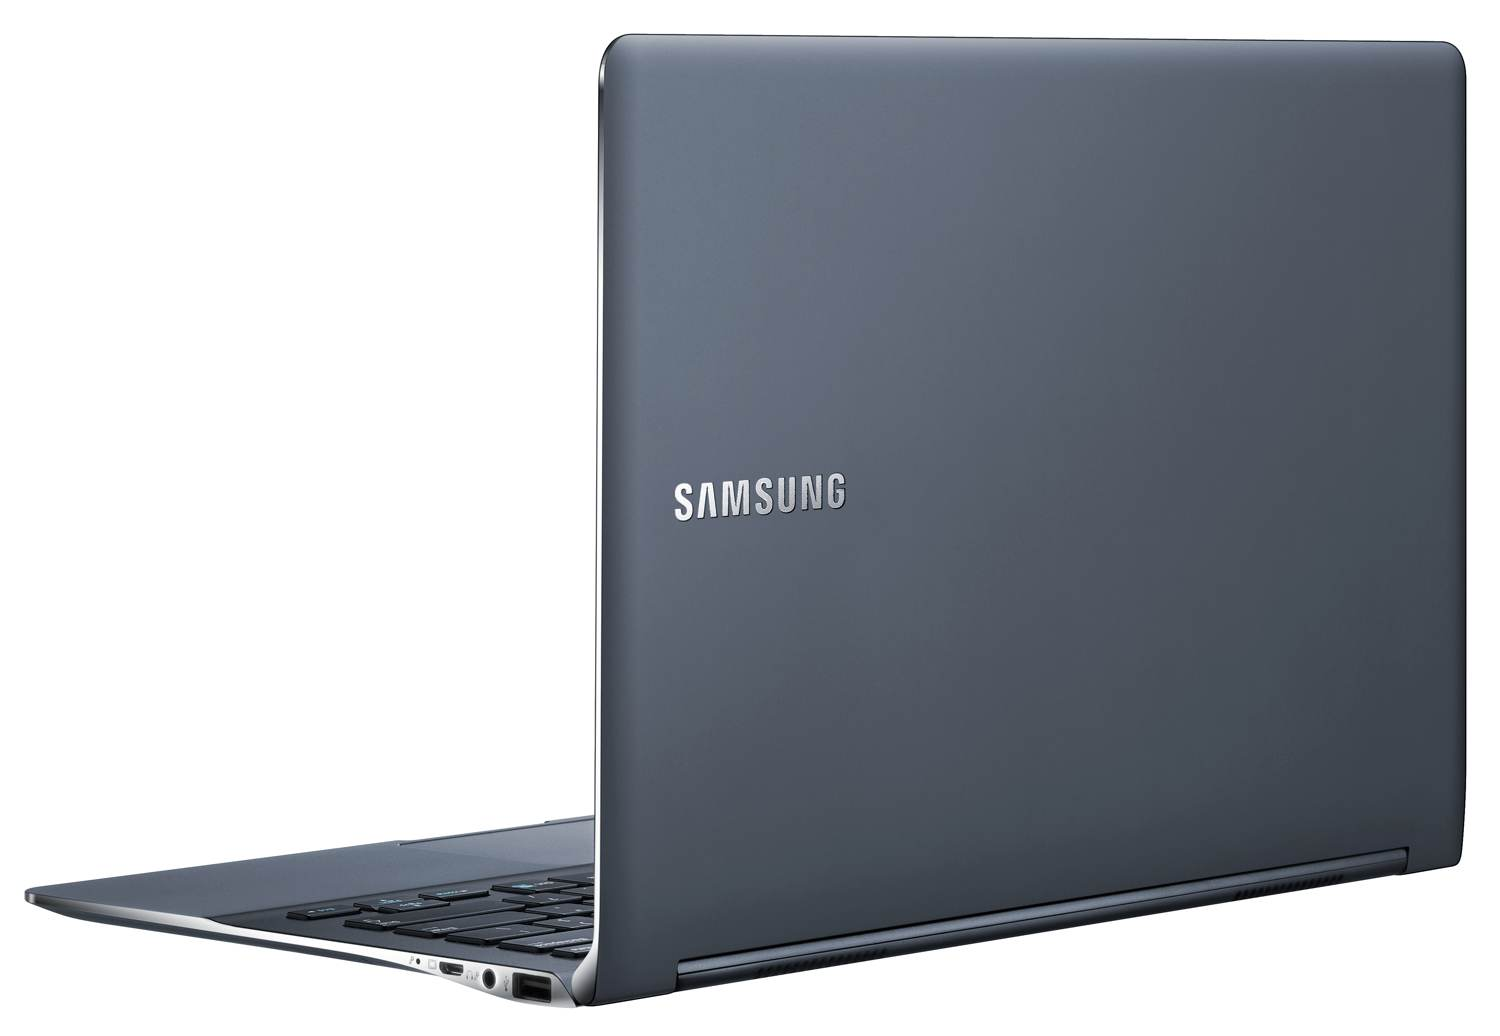 Amazon.com : Samsung Series 9 NP900X3C-A01US 13.3-Inch